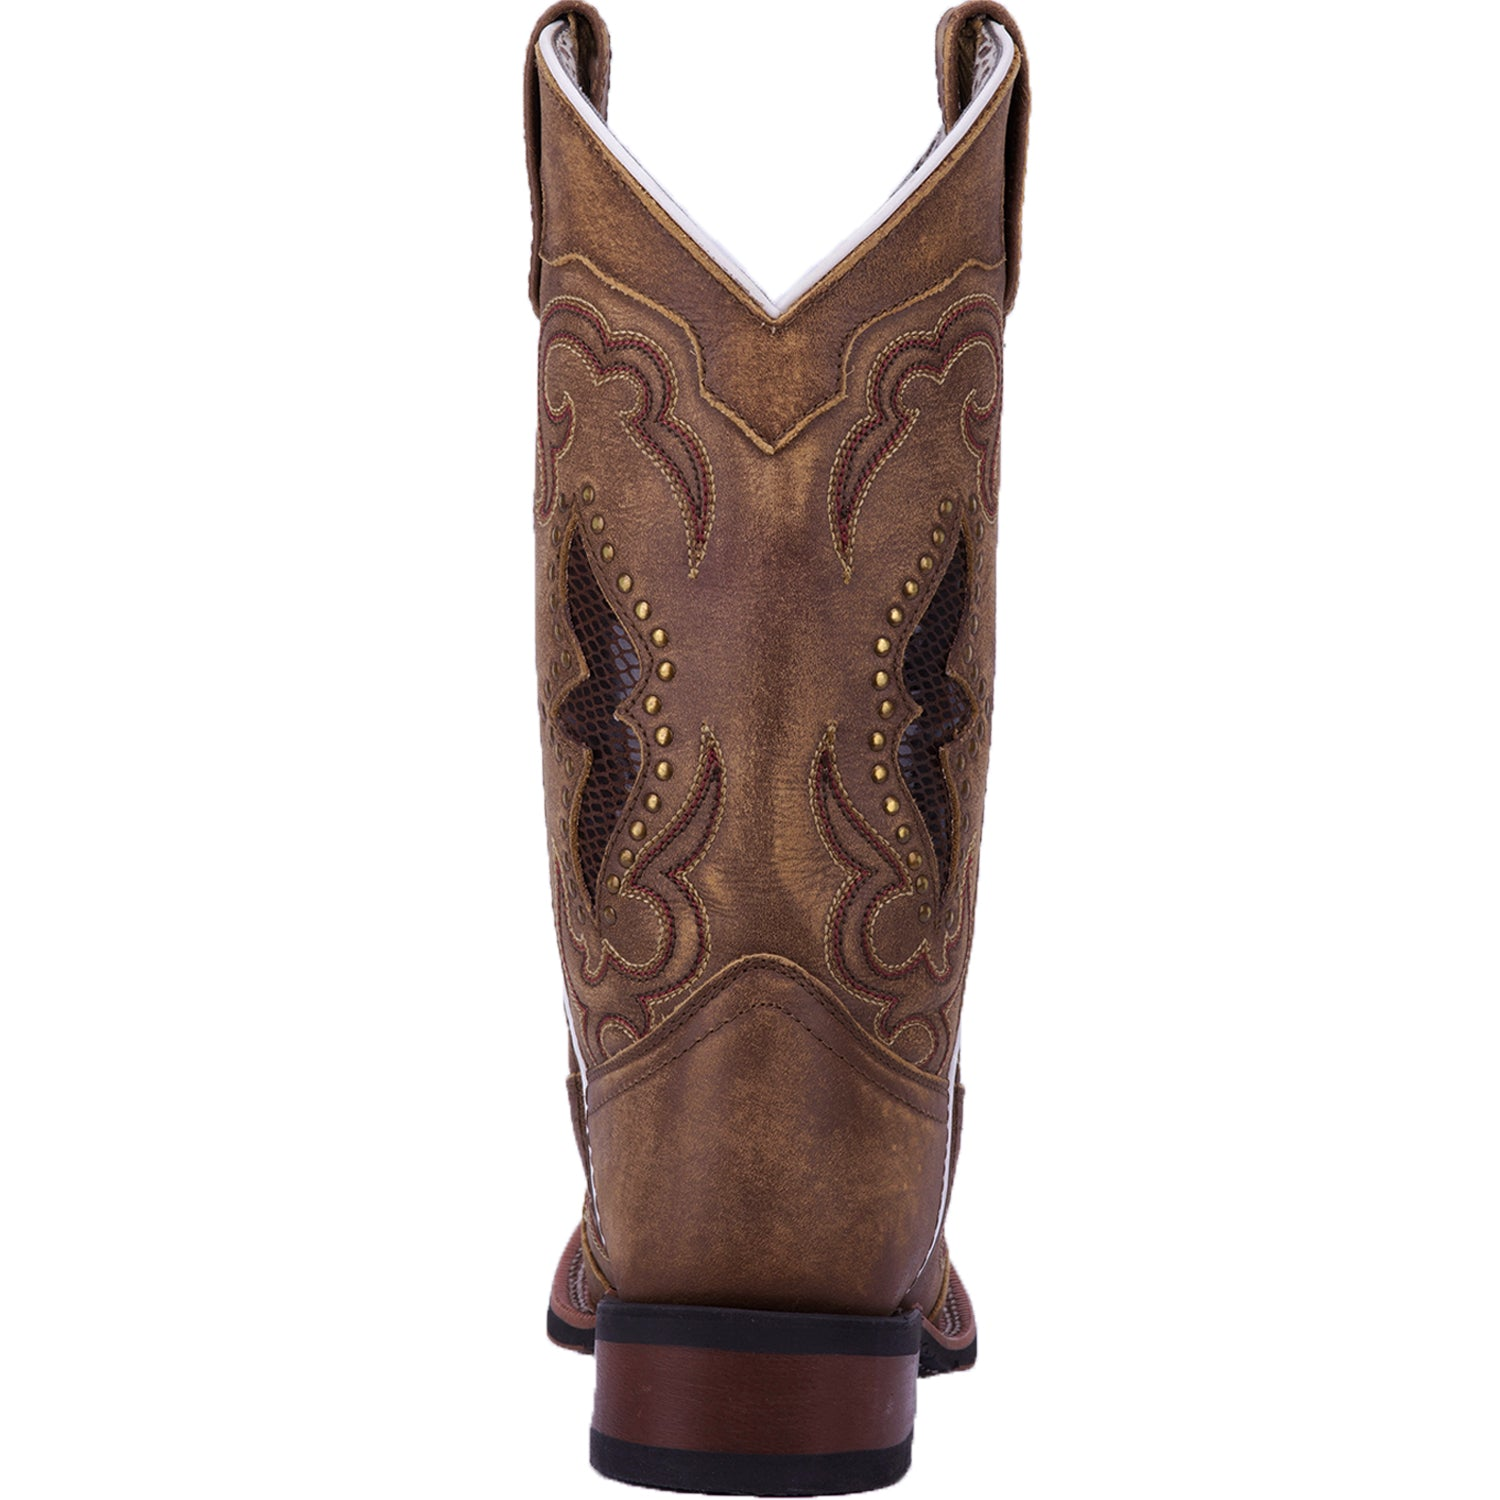 SPELLBOUND LEATHER BOOT 4197200068650